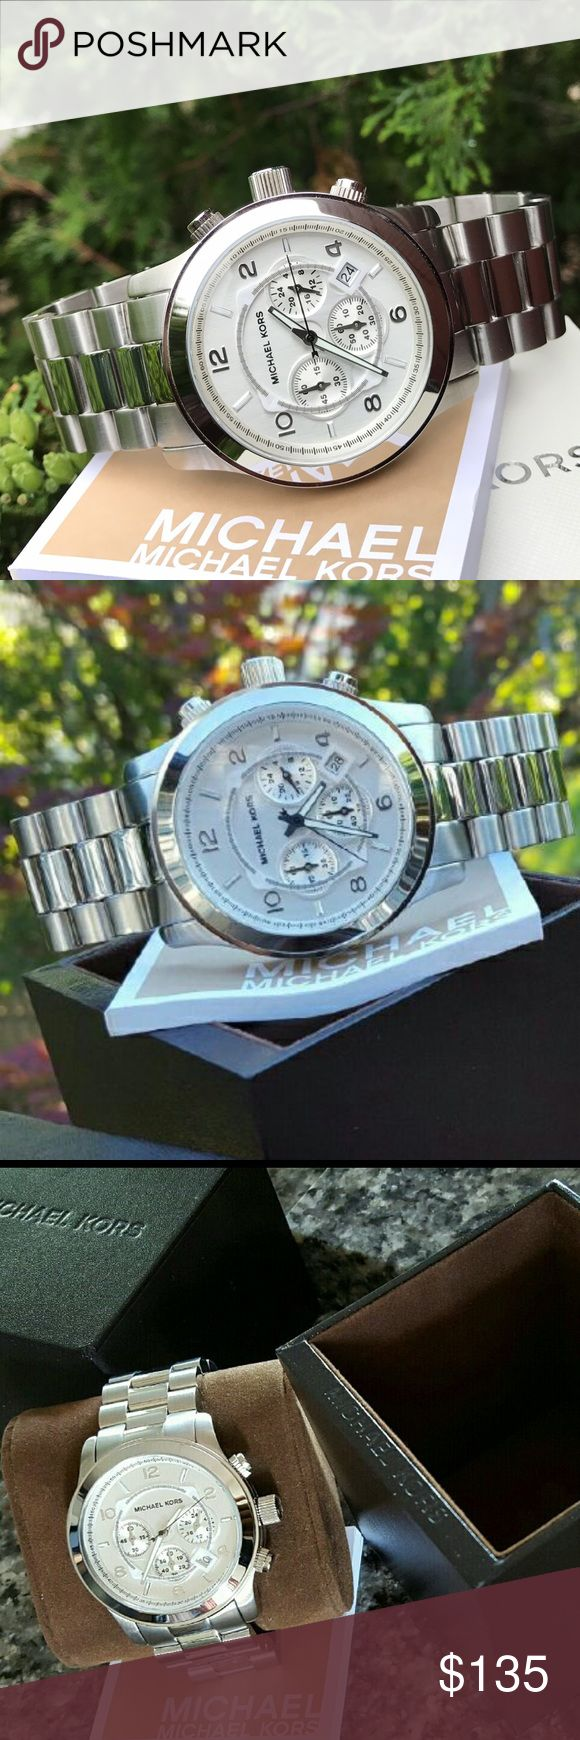 $275 Michael Kors 45mm MK Runway Watch MK8086 🔥 Selling out fast! 🔥 Guaranteed Authentic MK8086  💎 Model: Runway 💎 Retail: $275 Silver stainless steel  Michael Kors watch box and owners booklet included Chronograph  45mm case  10 ATM  UPC: 691464227159  No trades. Buy now or offer only. Shipped same business day Michael Kors Accessories Watches